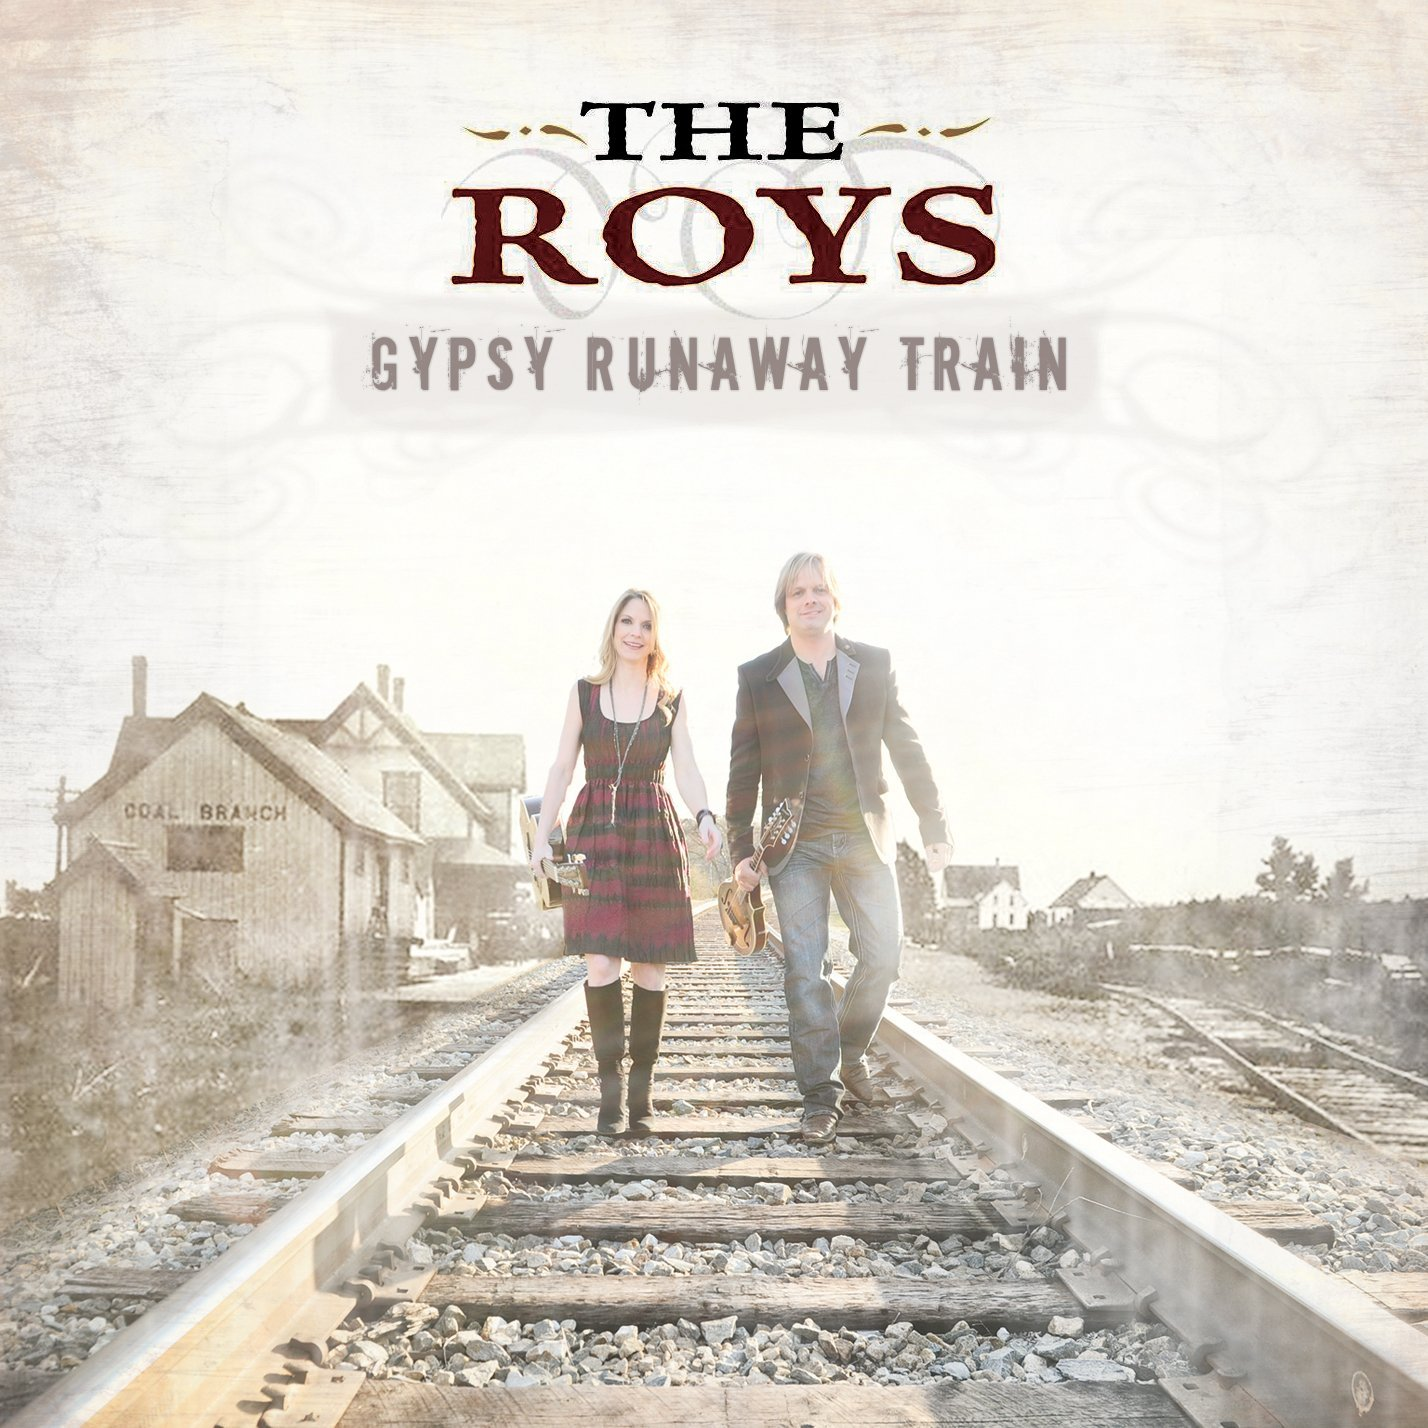 The-Roys-Gypsy-Runaway-Train-A-Music-Charts-Magazine-NEW-DISCOVERY-for-the-month-of-January-2014.jpg